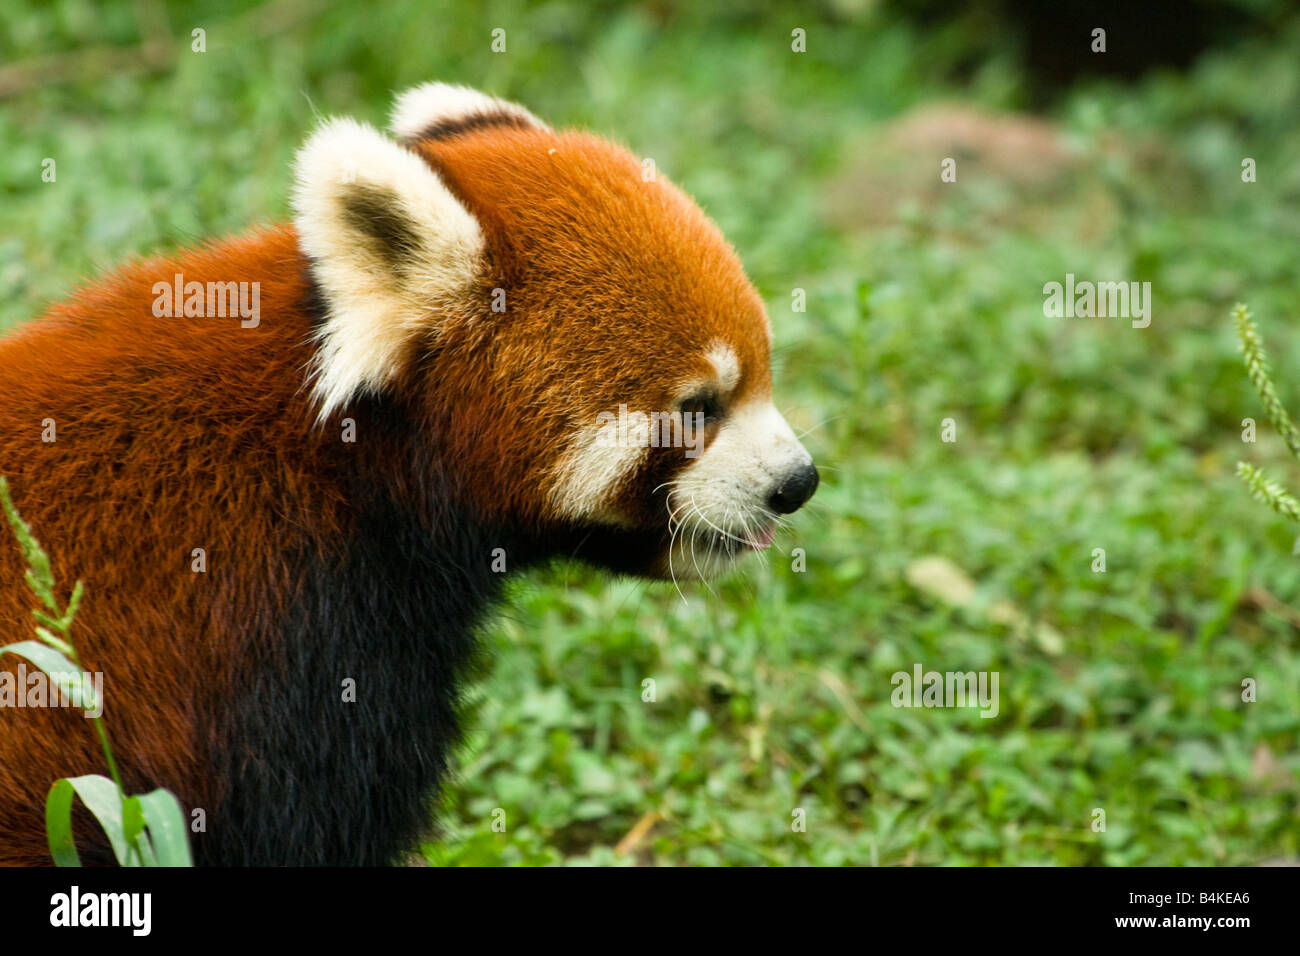 A red panda (Ailurus fulgens) Chengdu Panda Breeding and Research Center China - Stock Image